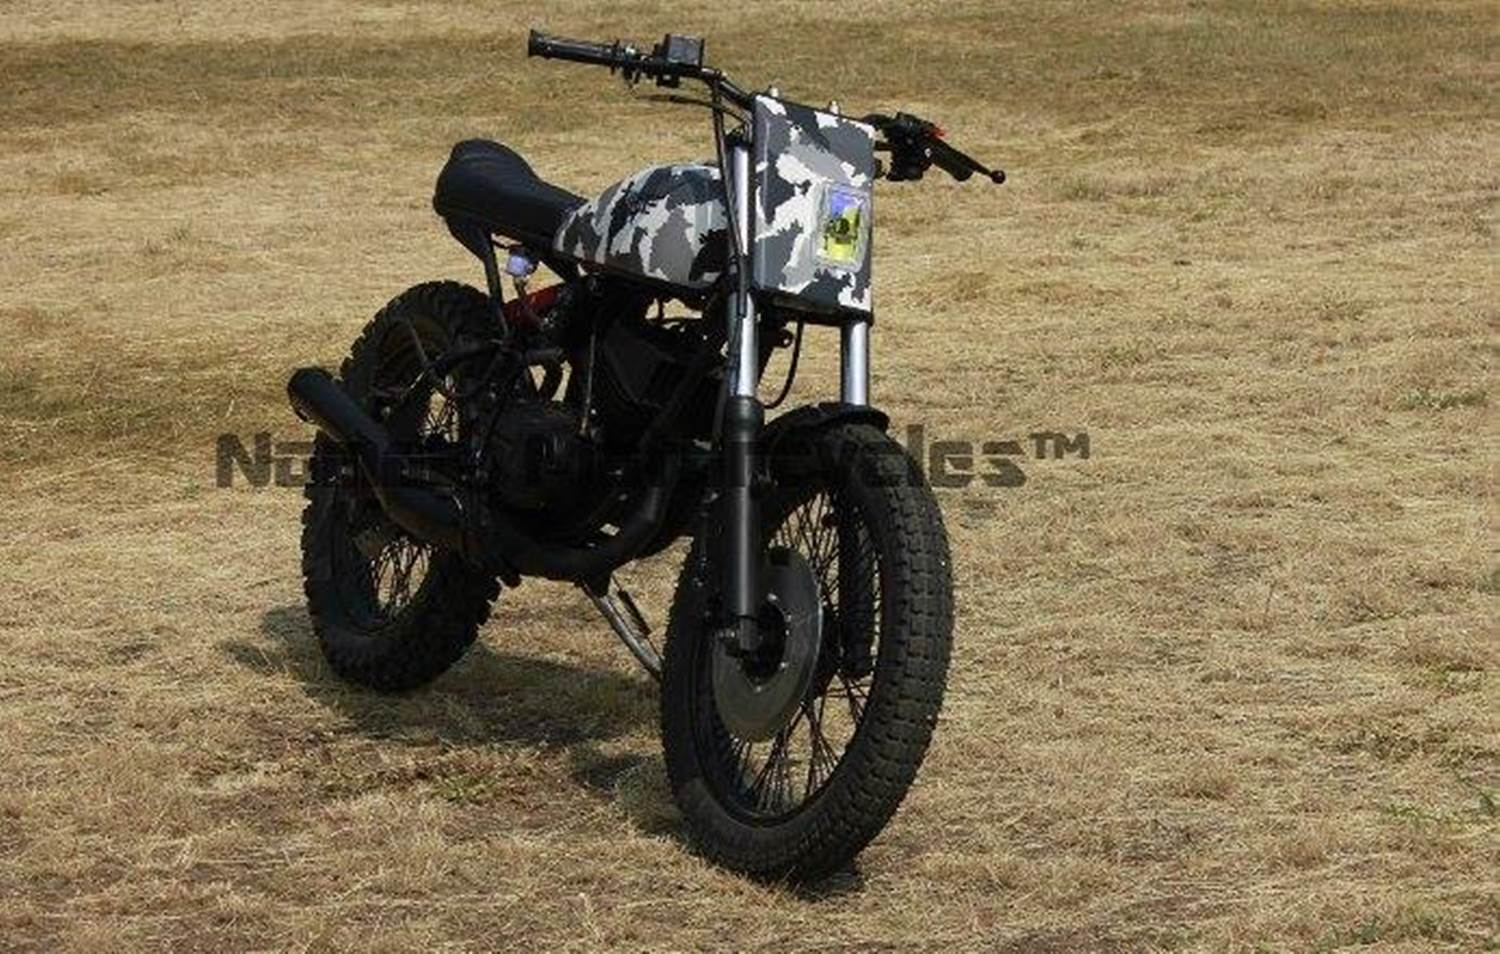 yamaha rx 100 scrambler is rebirth of an iconic stallion